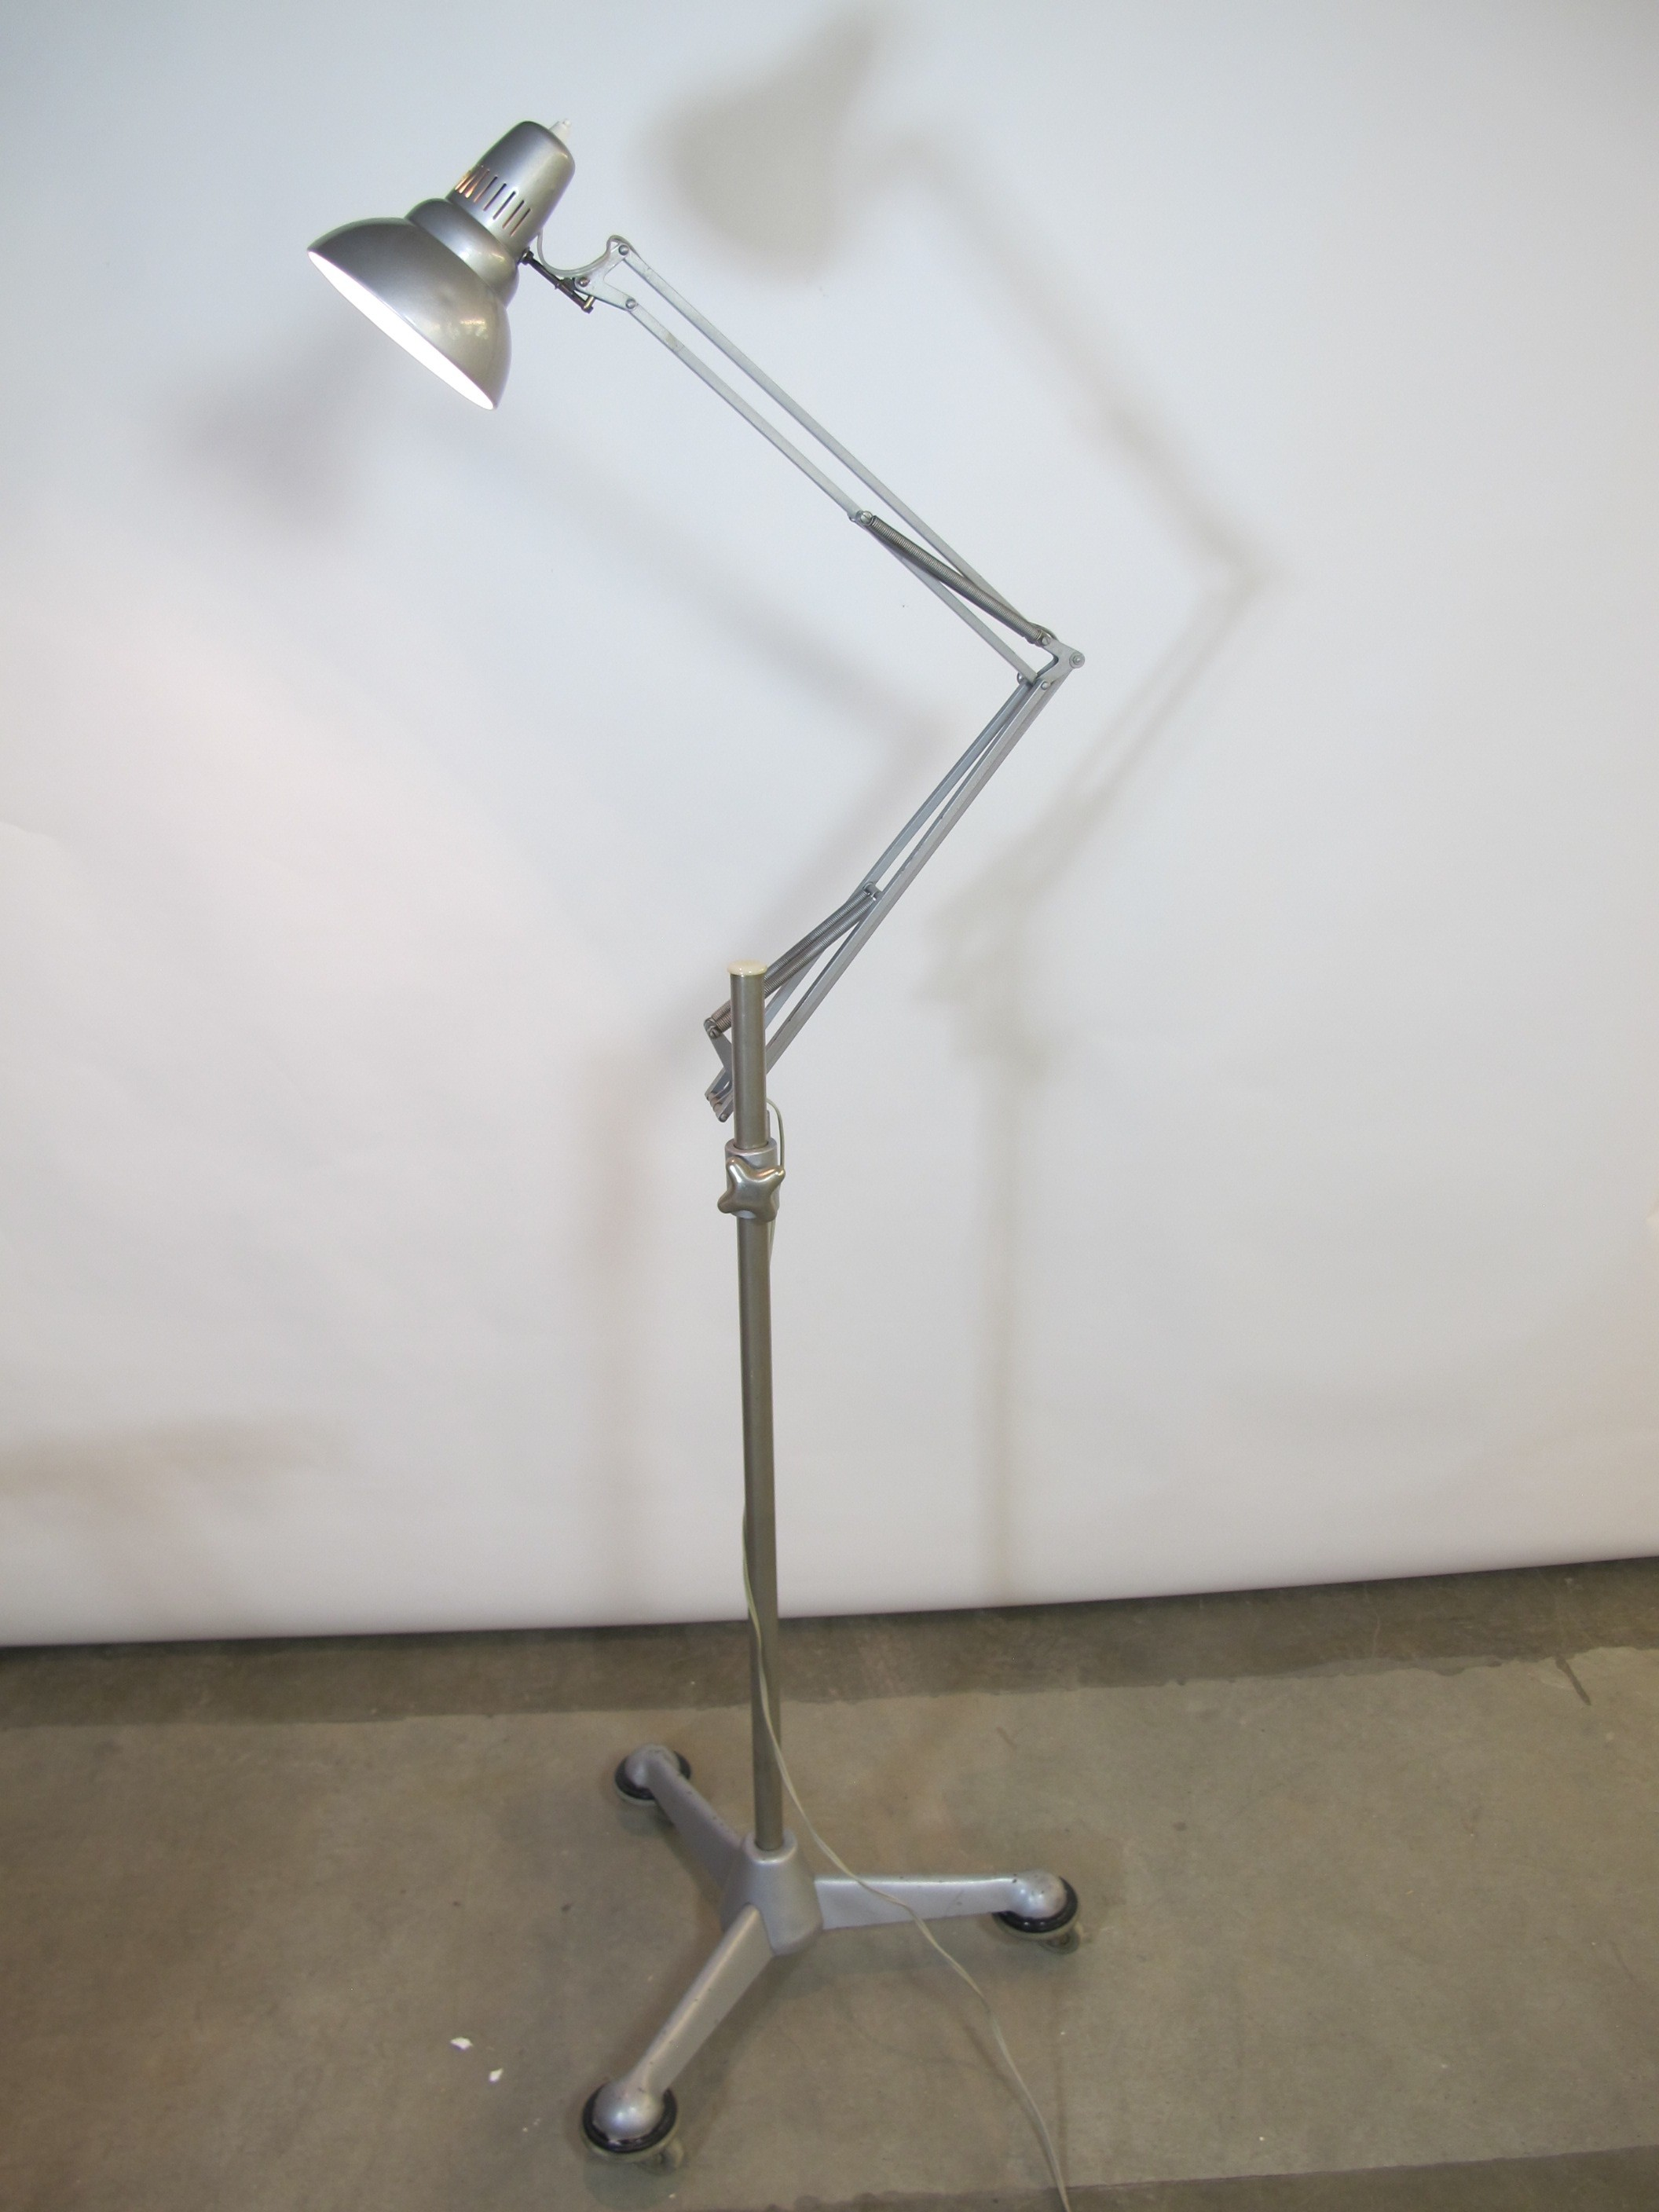 Vintage Anglepoise Floor Lamp With Wheels By Asea 1950s